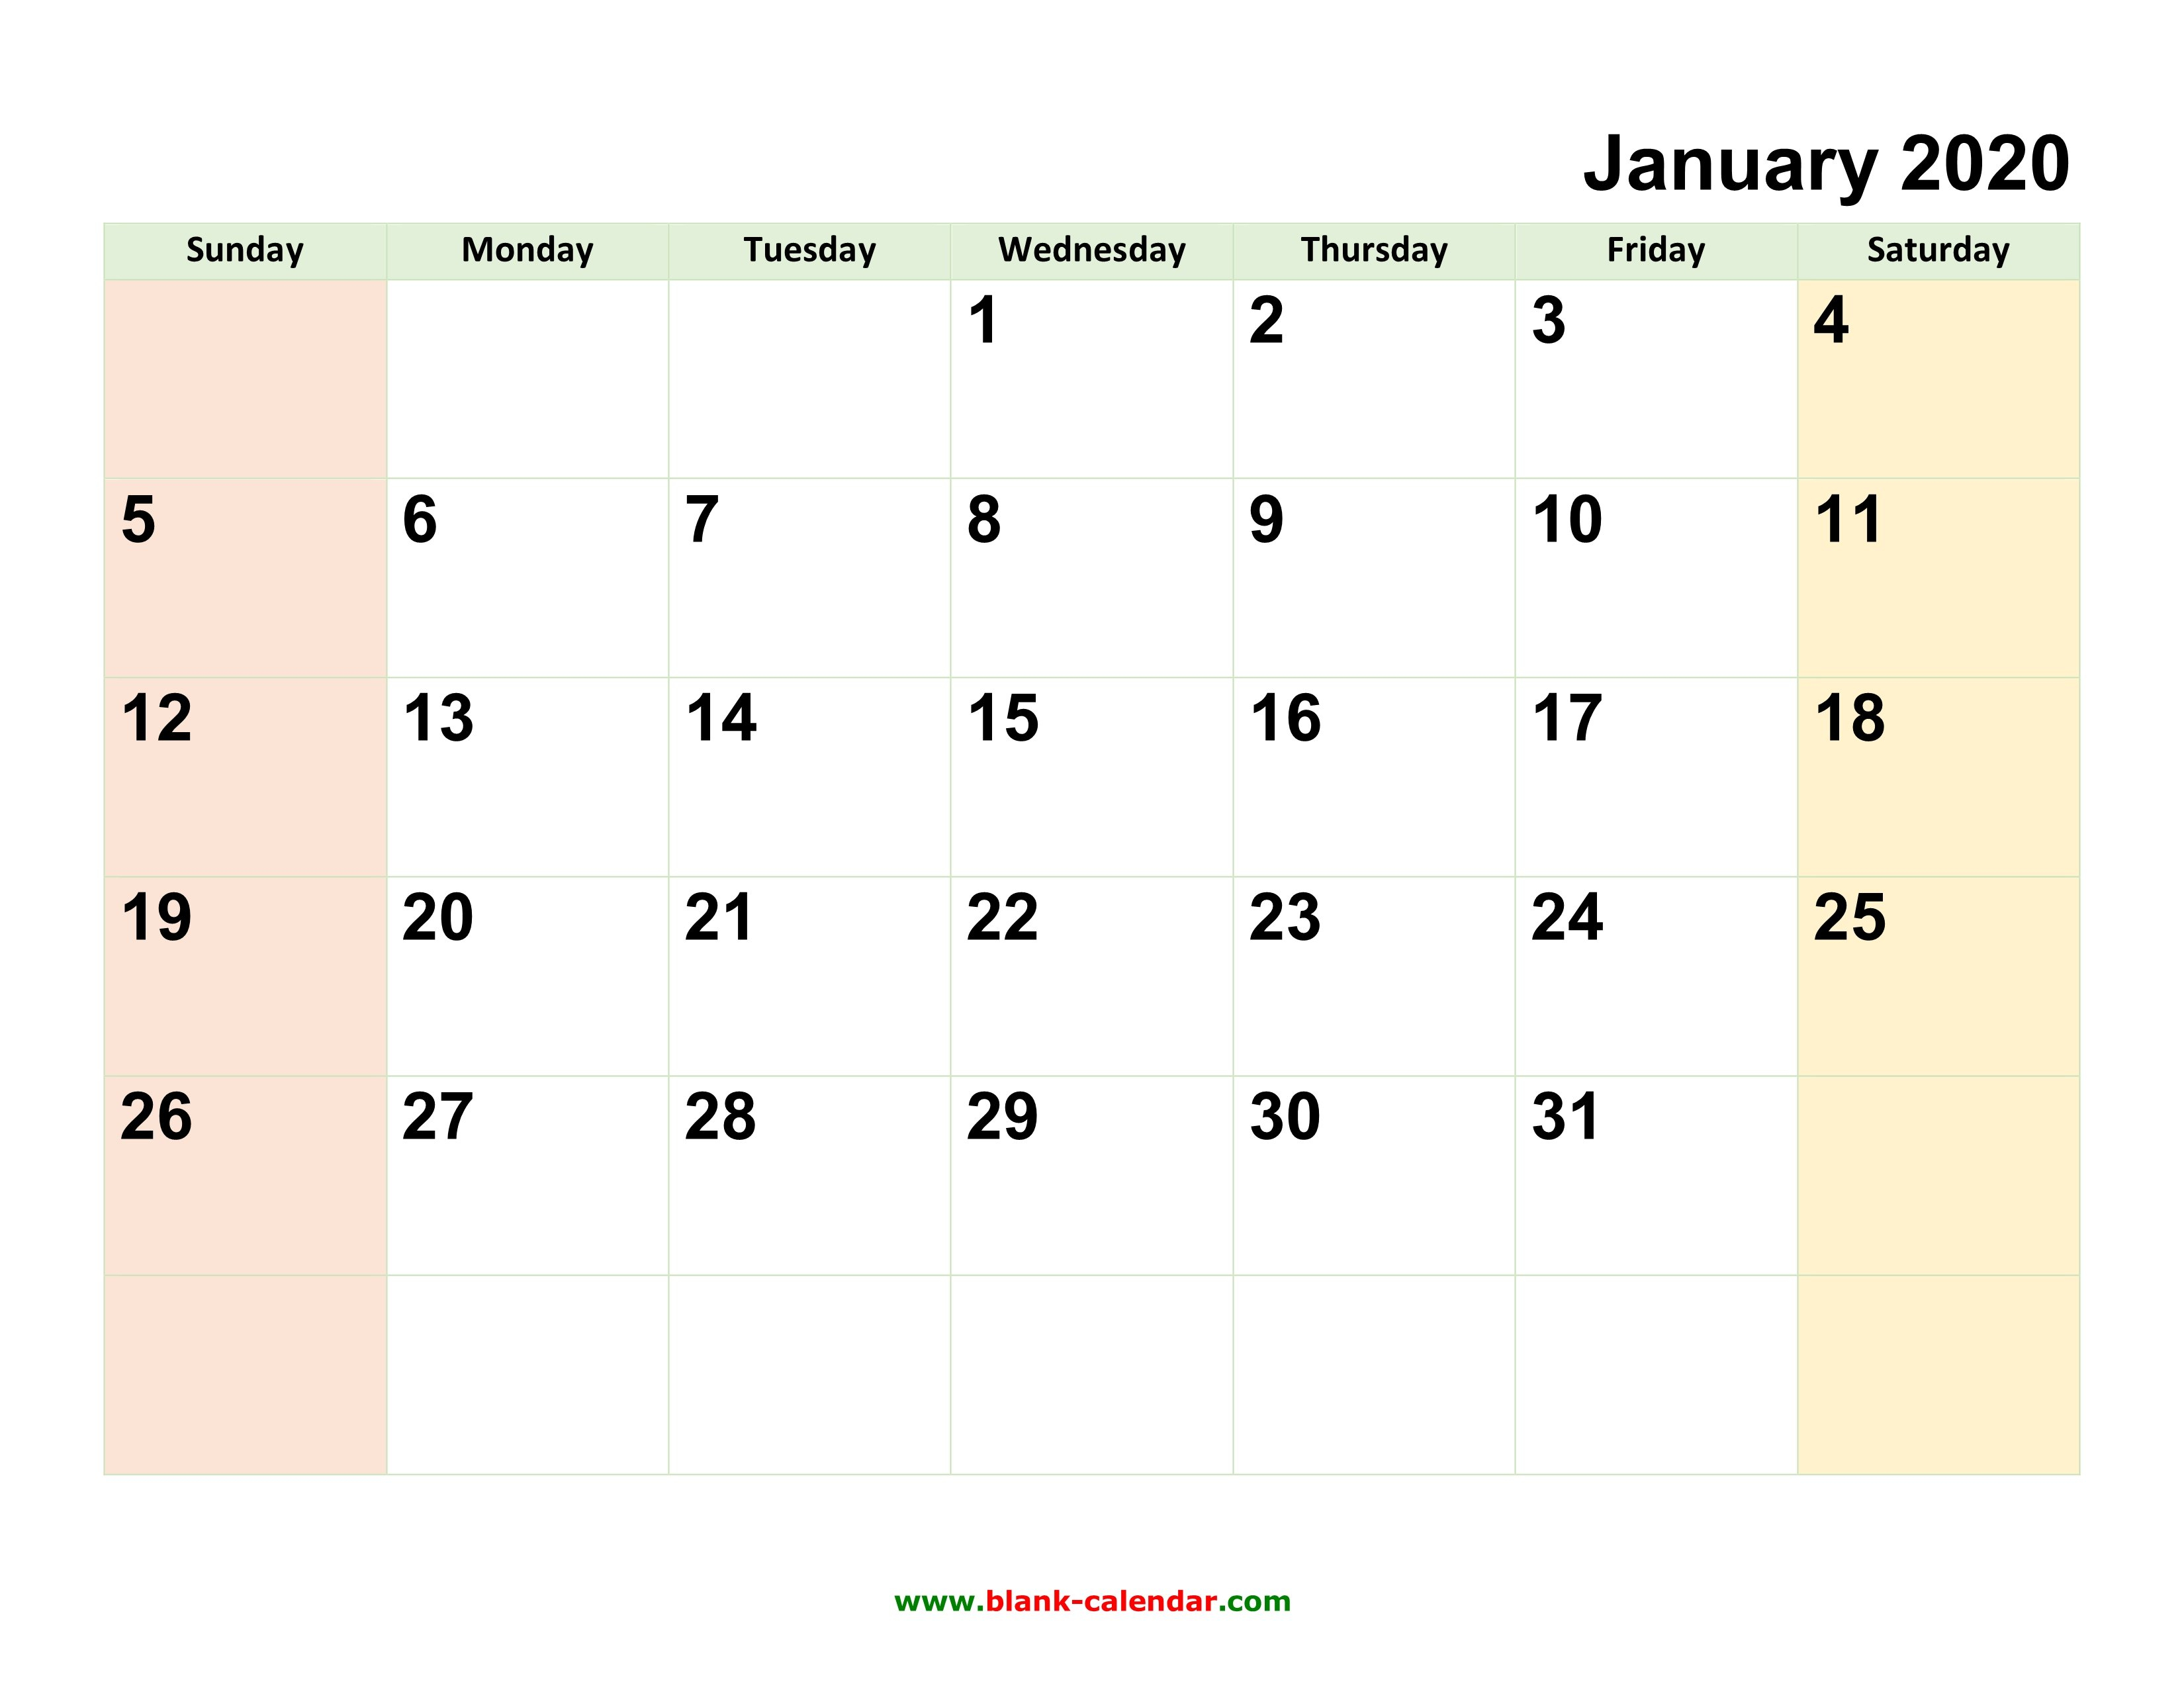 Monthly Calendar 2020 | Free Download, Editable And Printable Free Weekly Calander That You Can Edit